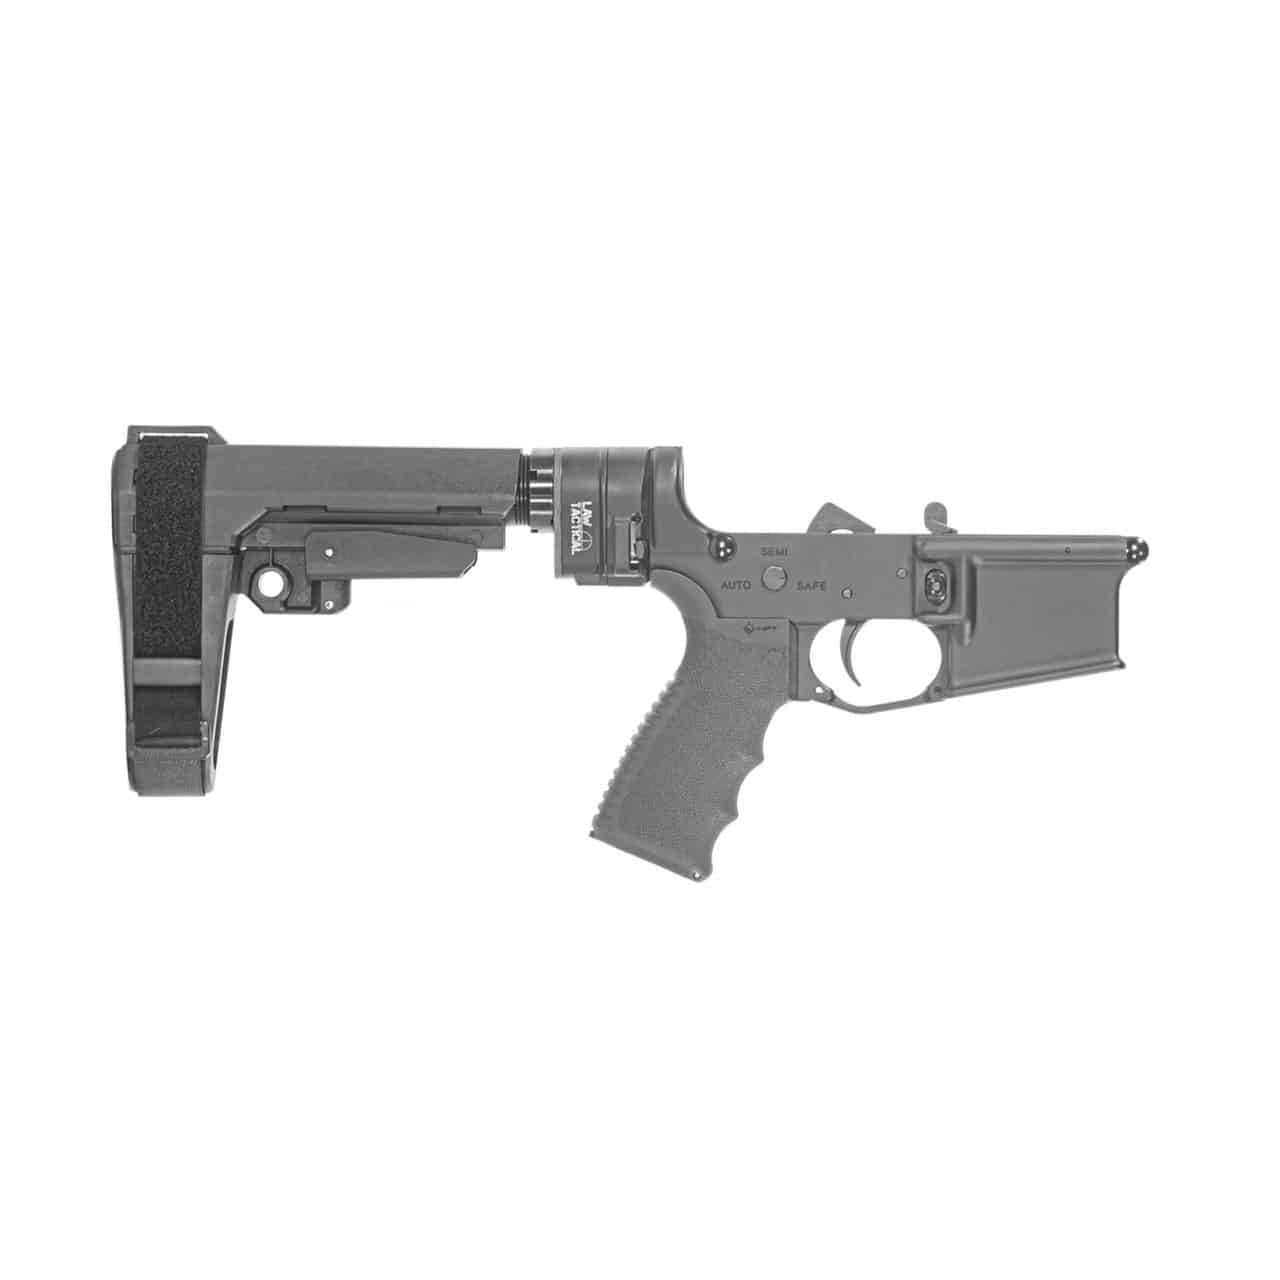 AR15  M4 PISTOL LOWER RECEIVER, ANDRO CORP, SB TACTICAL SBA3 PISTOL BRACE, LAW TACTICAL